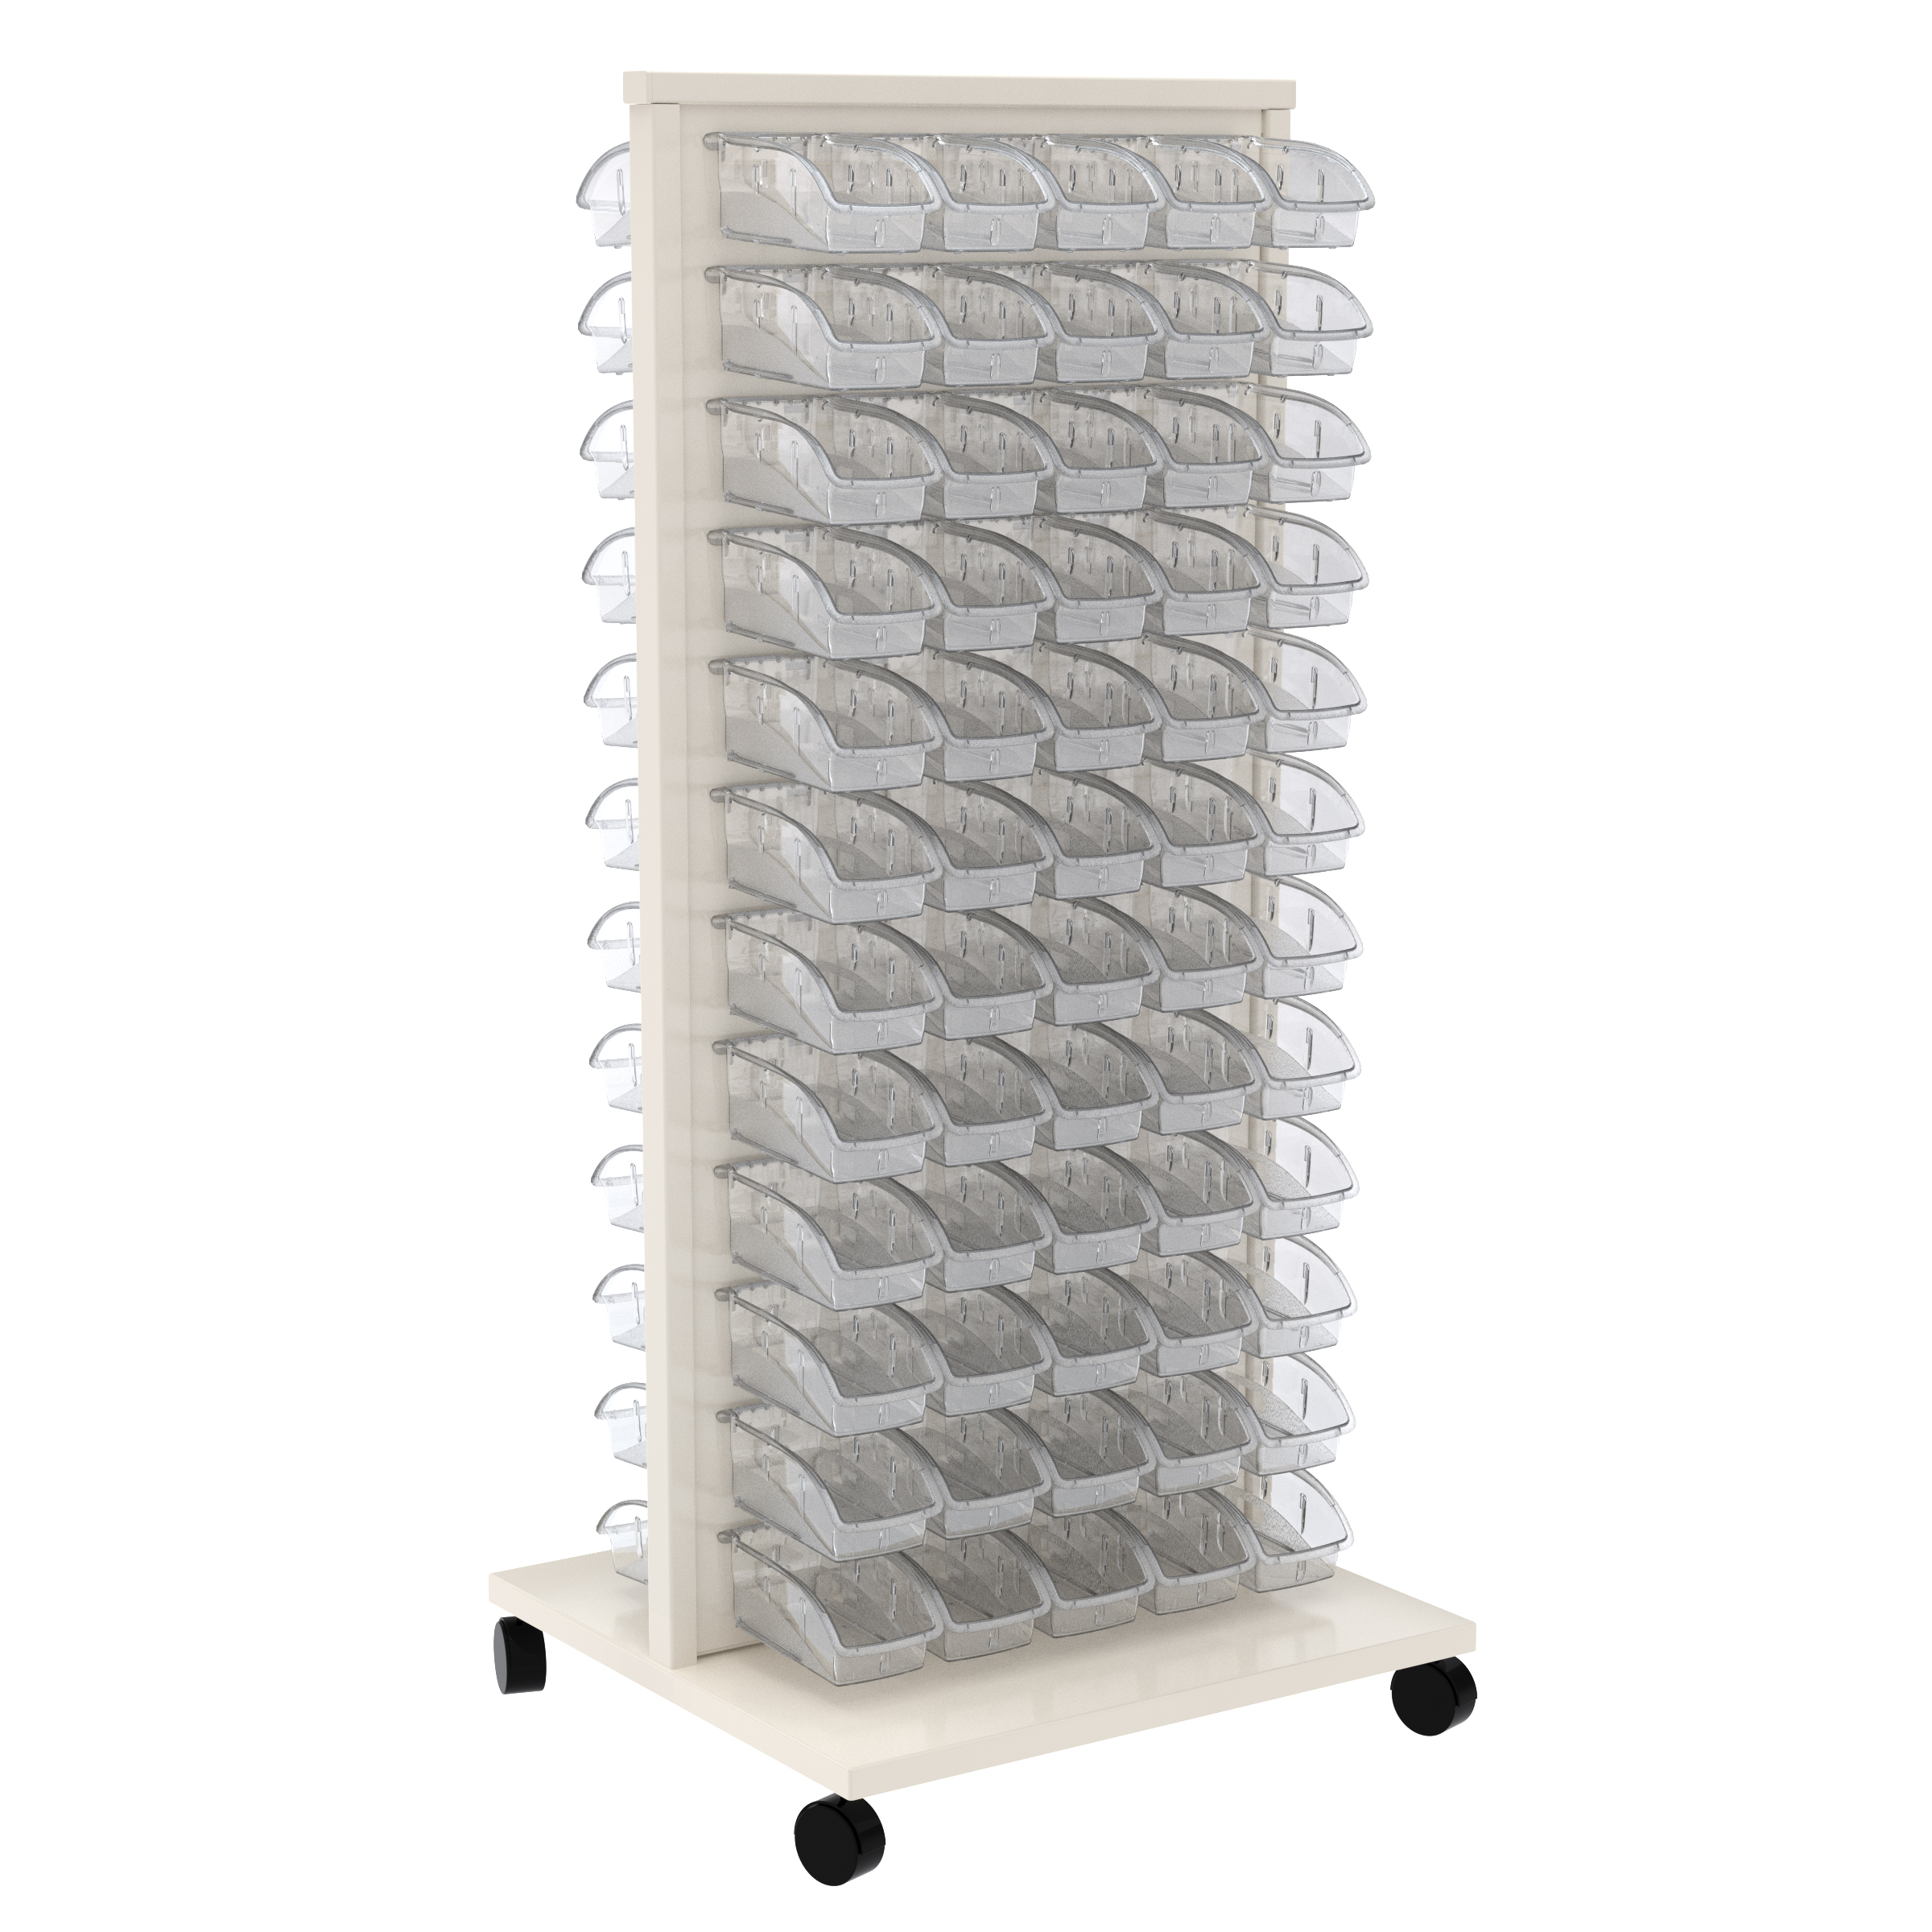 Item DISCONTINUED by Manufacturer.  ReadySpace Floor Unit w/ 120 InSight Bins 305A3, White/Clear (30553A3).  This item sold in carton quantities of 1.